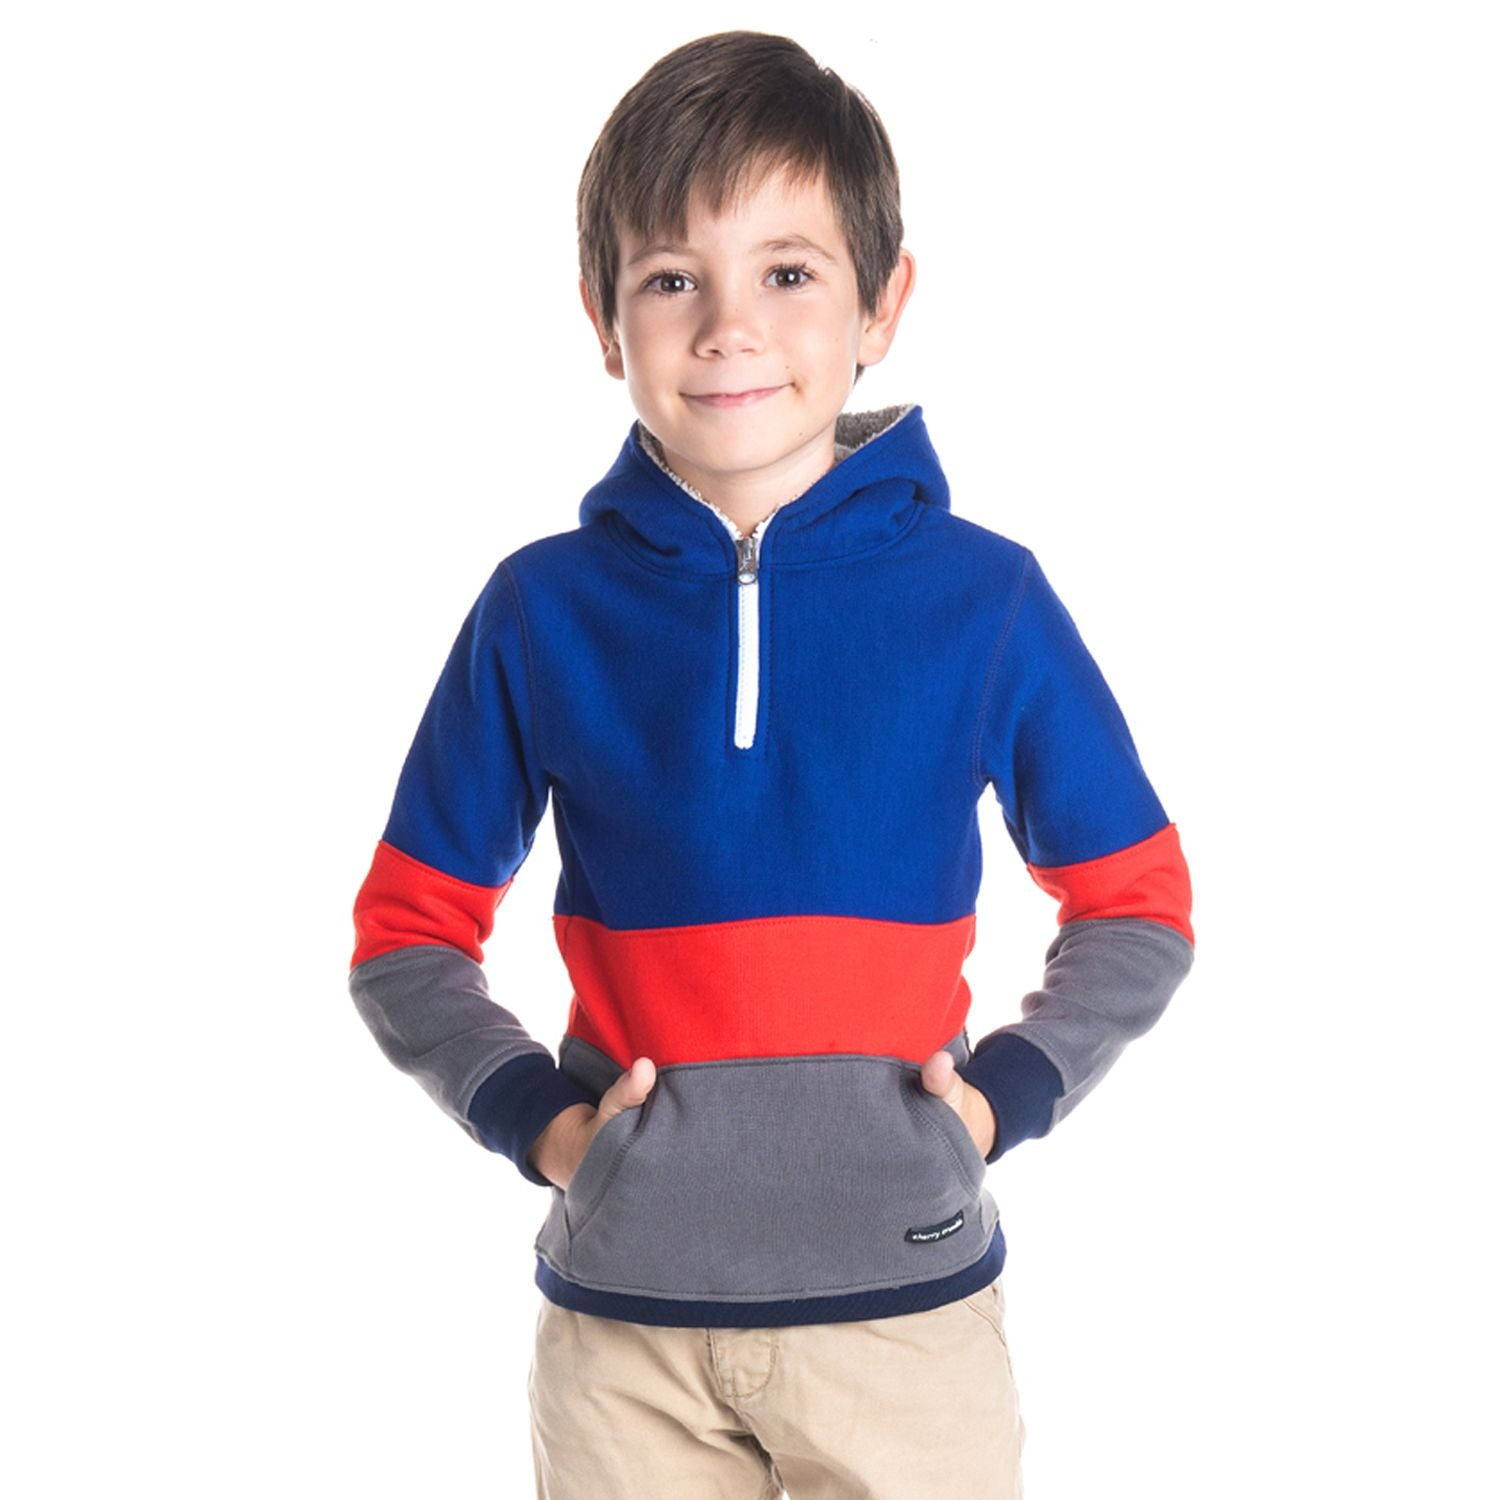 Pluto Sweatshirt for Boys